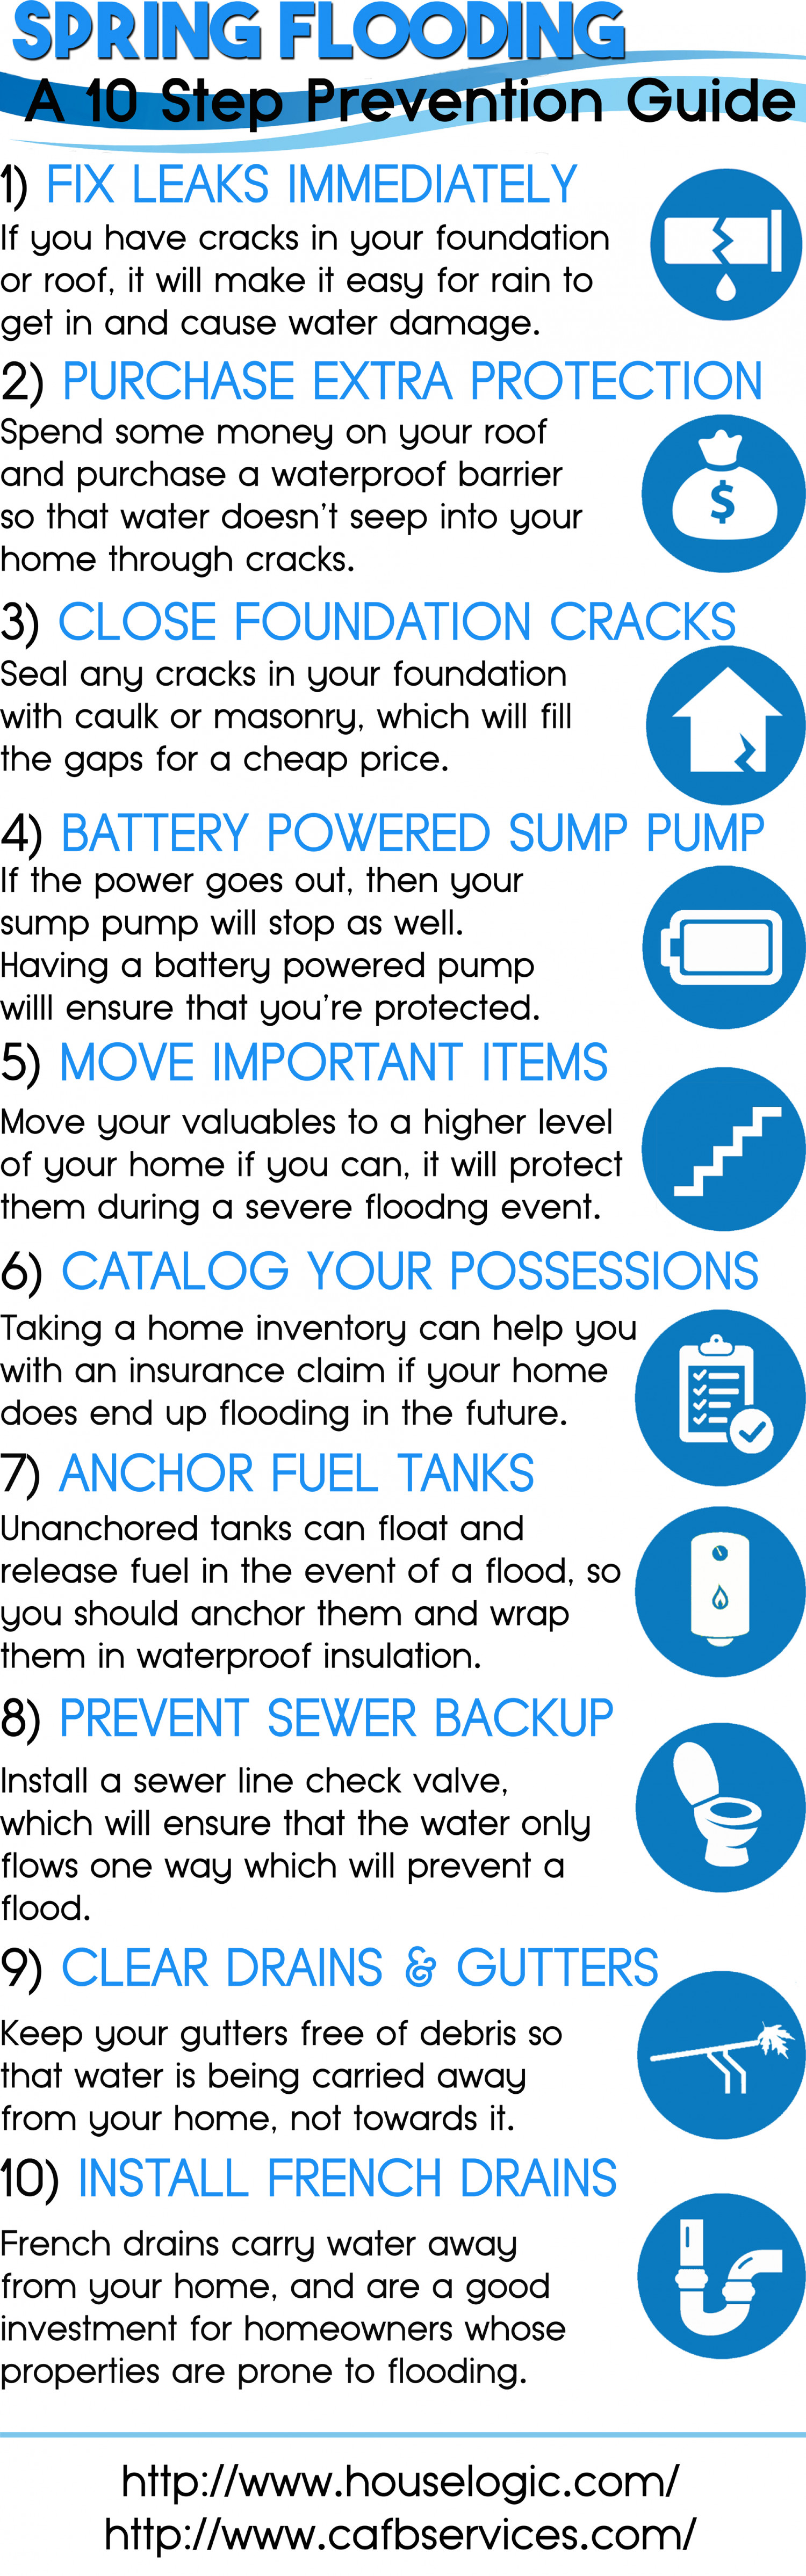 10 Spring Flooding Prevention Tips Infographic